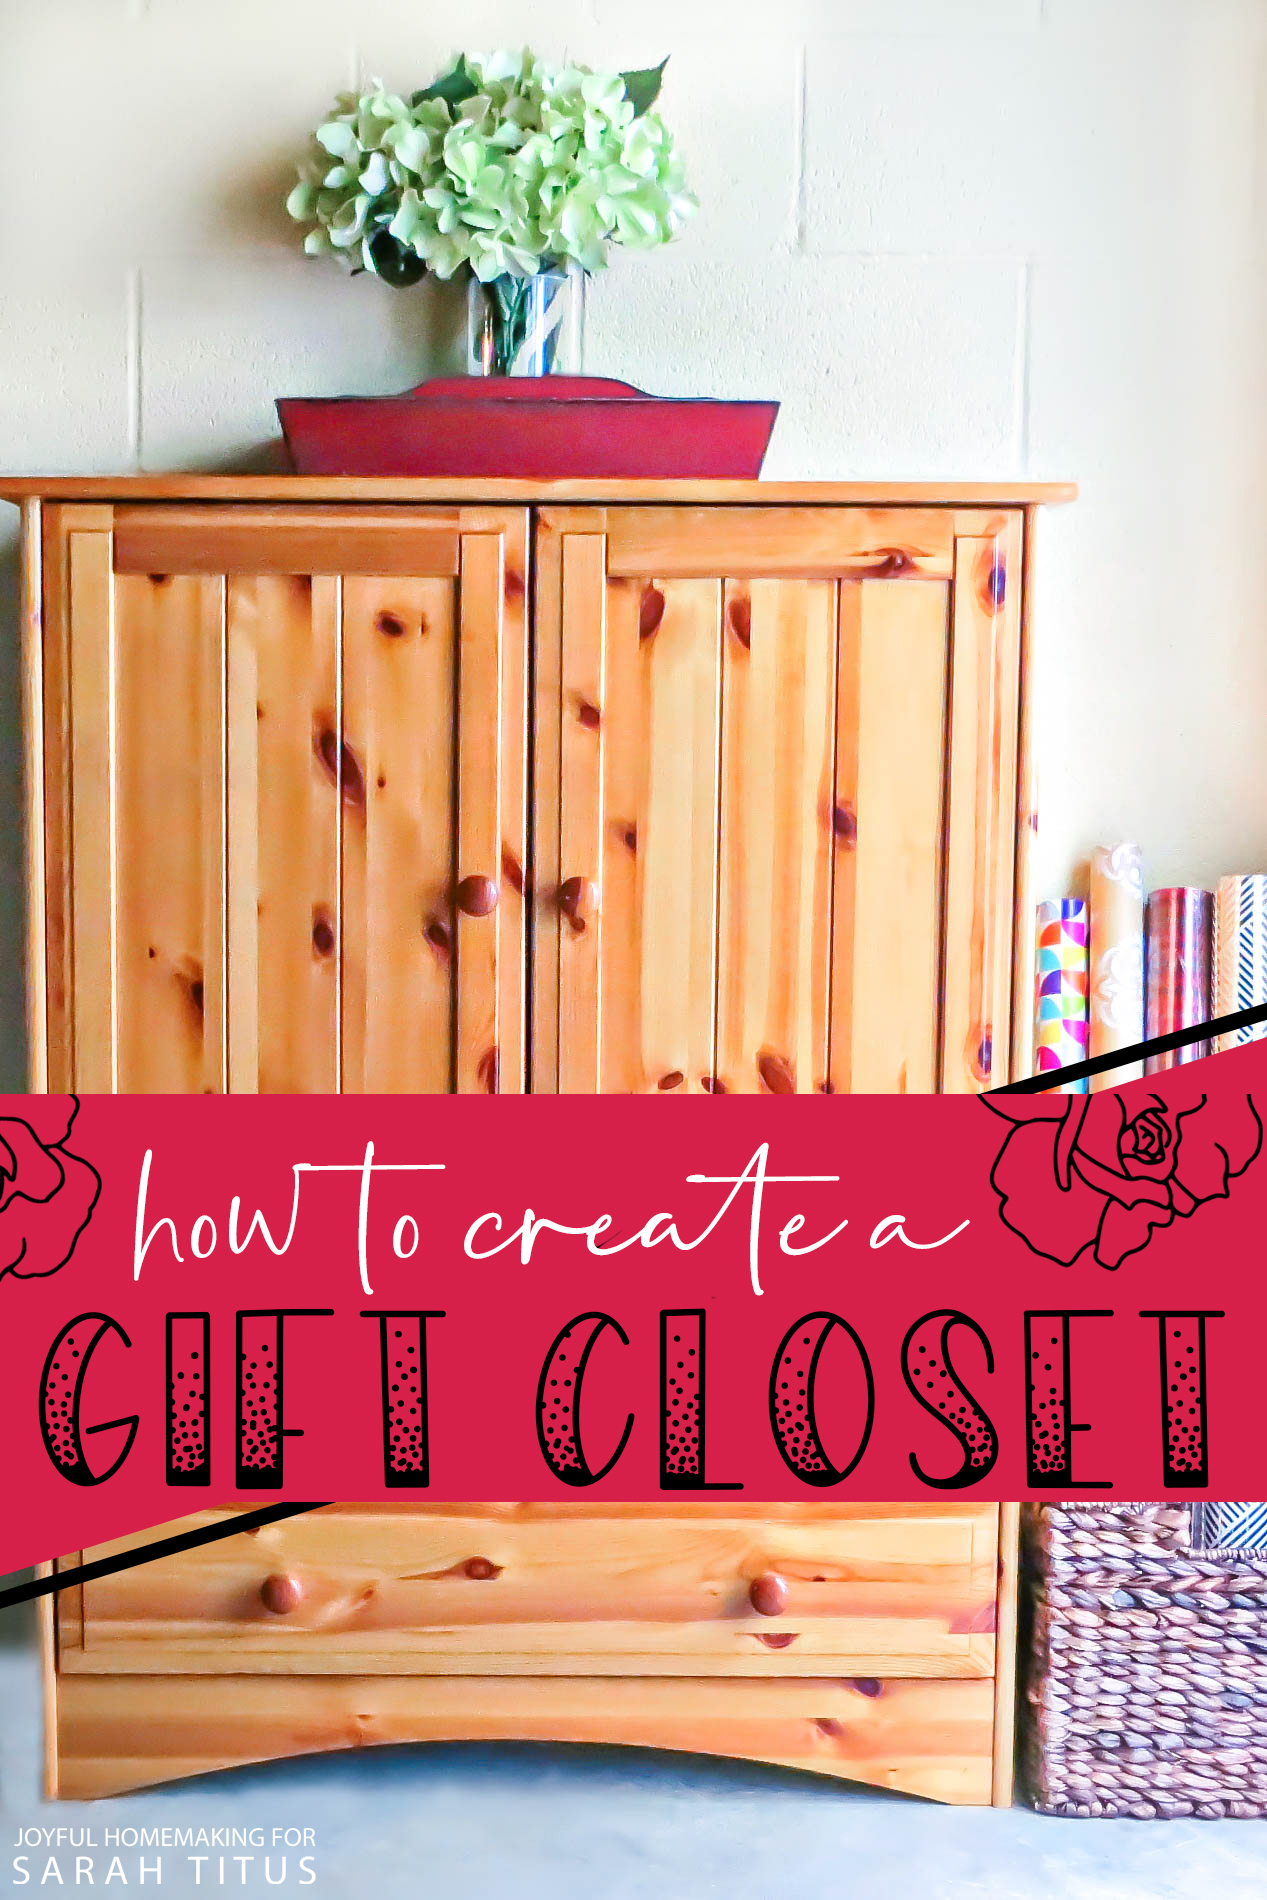 My secret to saving thousands of dollars every year: here's how to create a gift closet. #giftcloset #saveongifts #saveonpresents #livewellforless